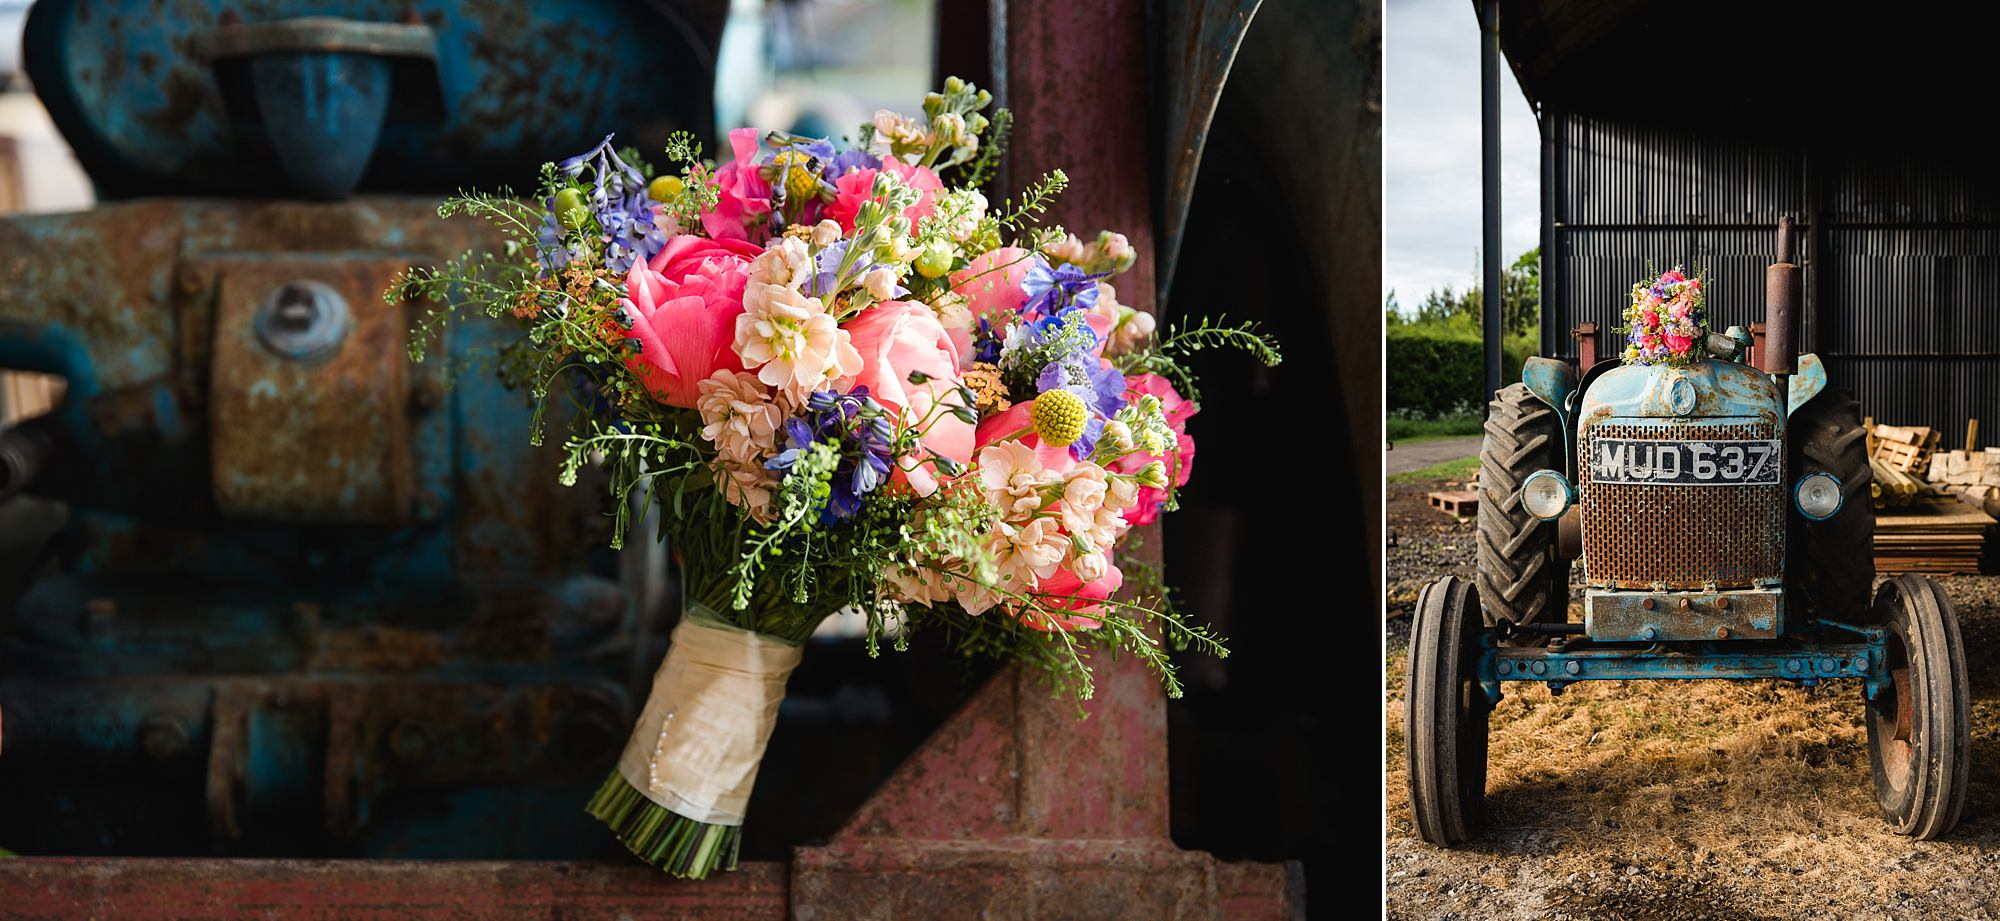 Caswell House Wedding bouquets photographed on top of vintage tractor